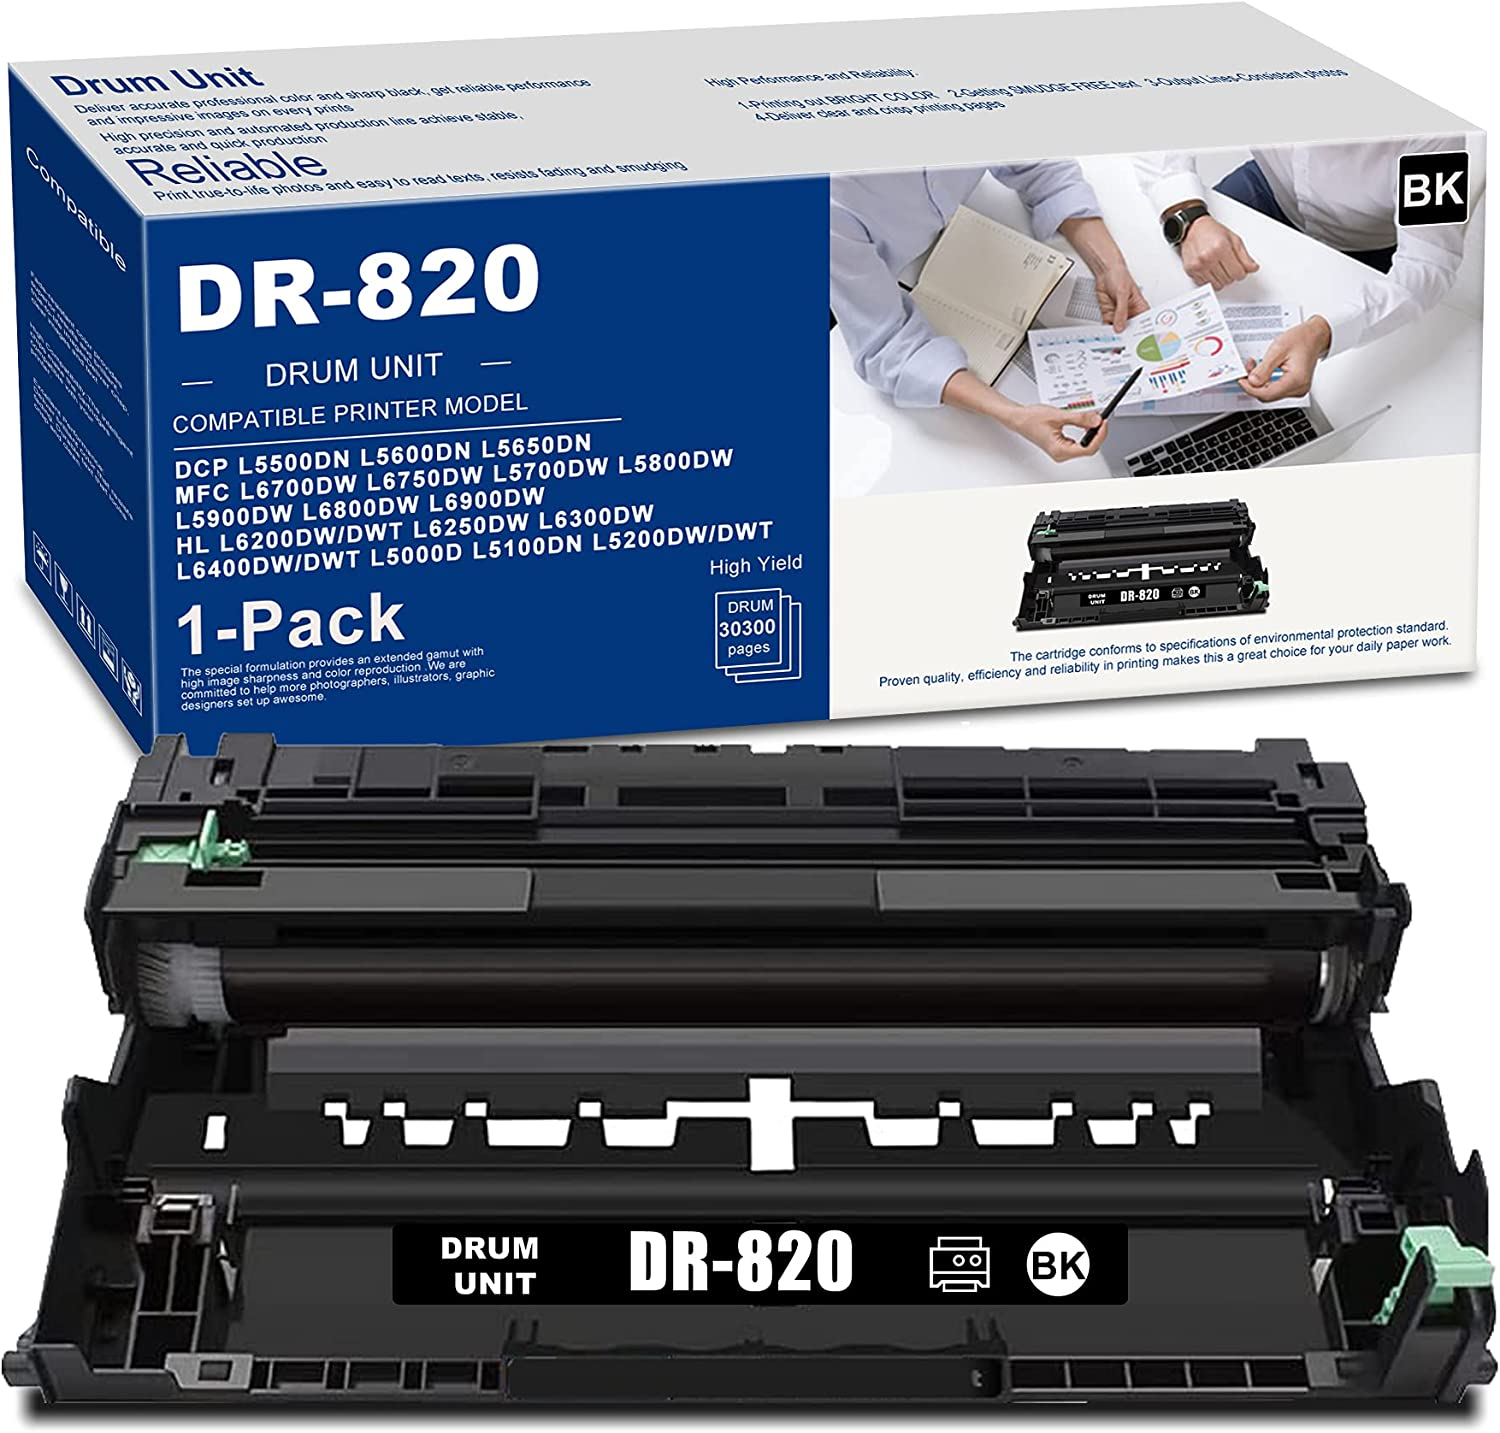 (1 PK Black) DR820 DR-820 Drum Unit High Yield Compatible Replacement for Brother DCP L5600DN L5500DN L5650DN MFC L5700DW L5800DW L6750DW L5900DW L6700DW L6800DW L6900DW Printer